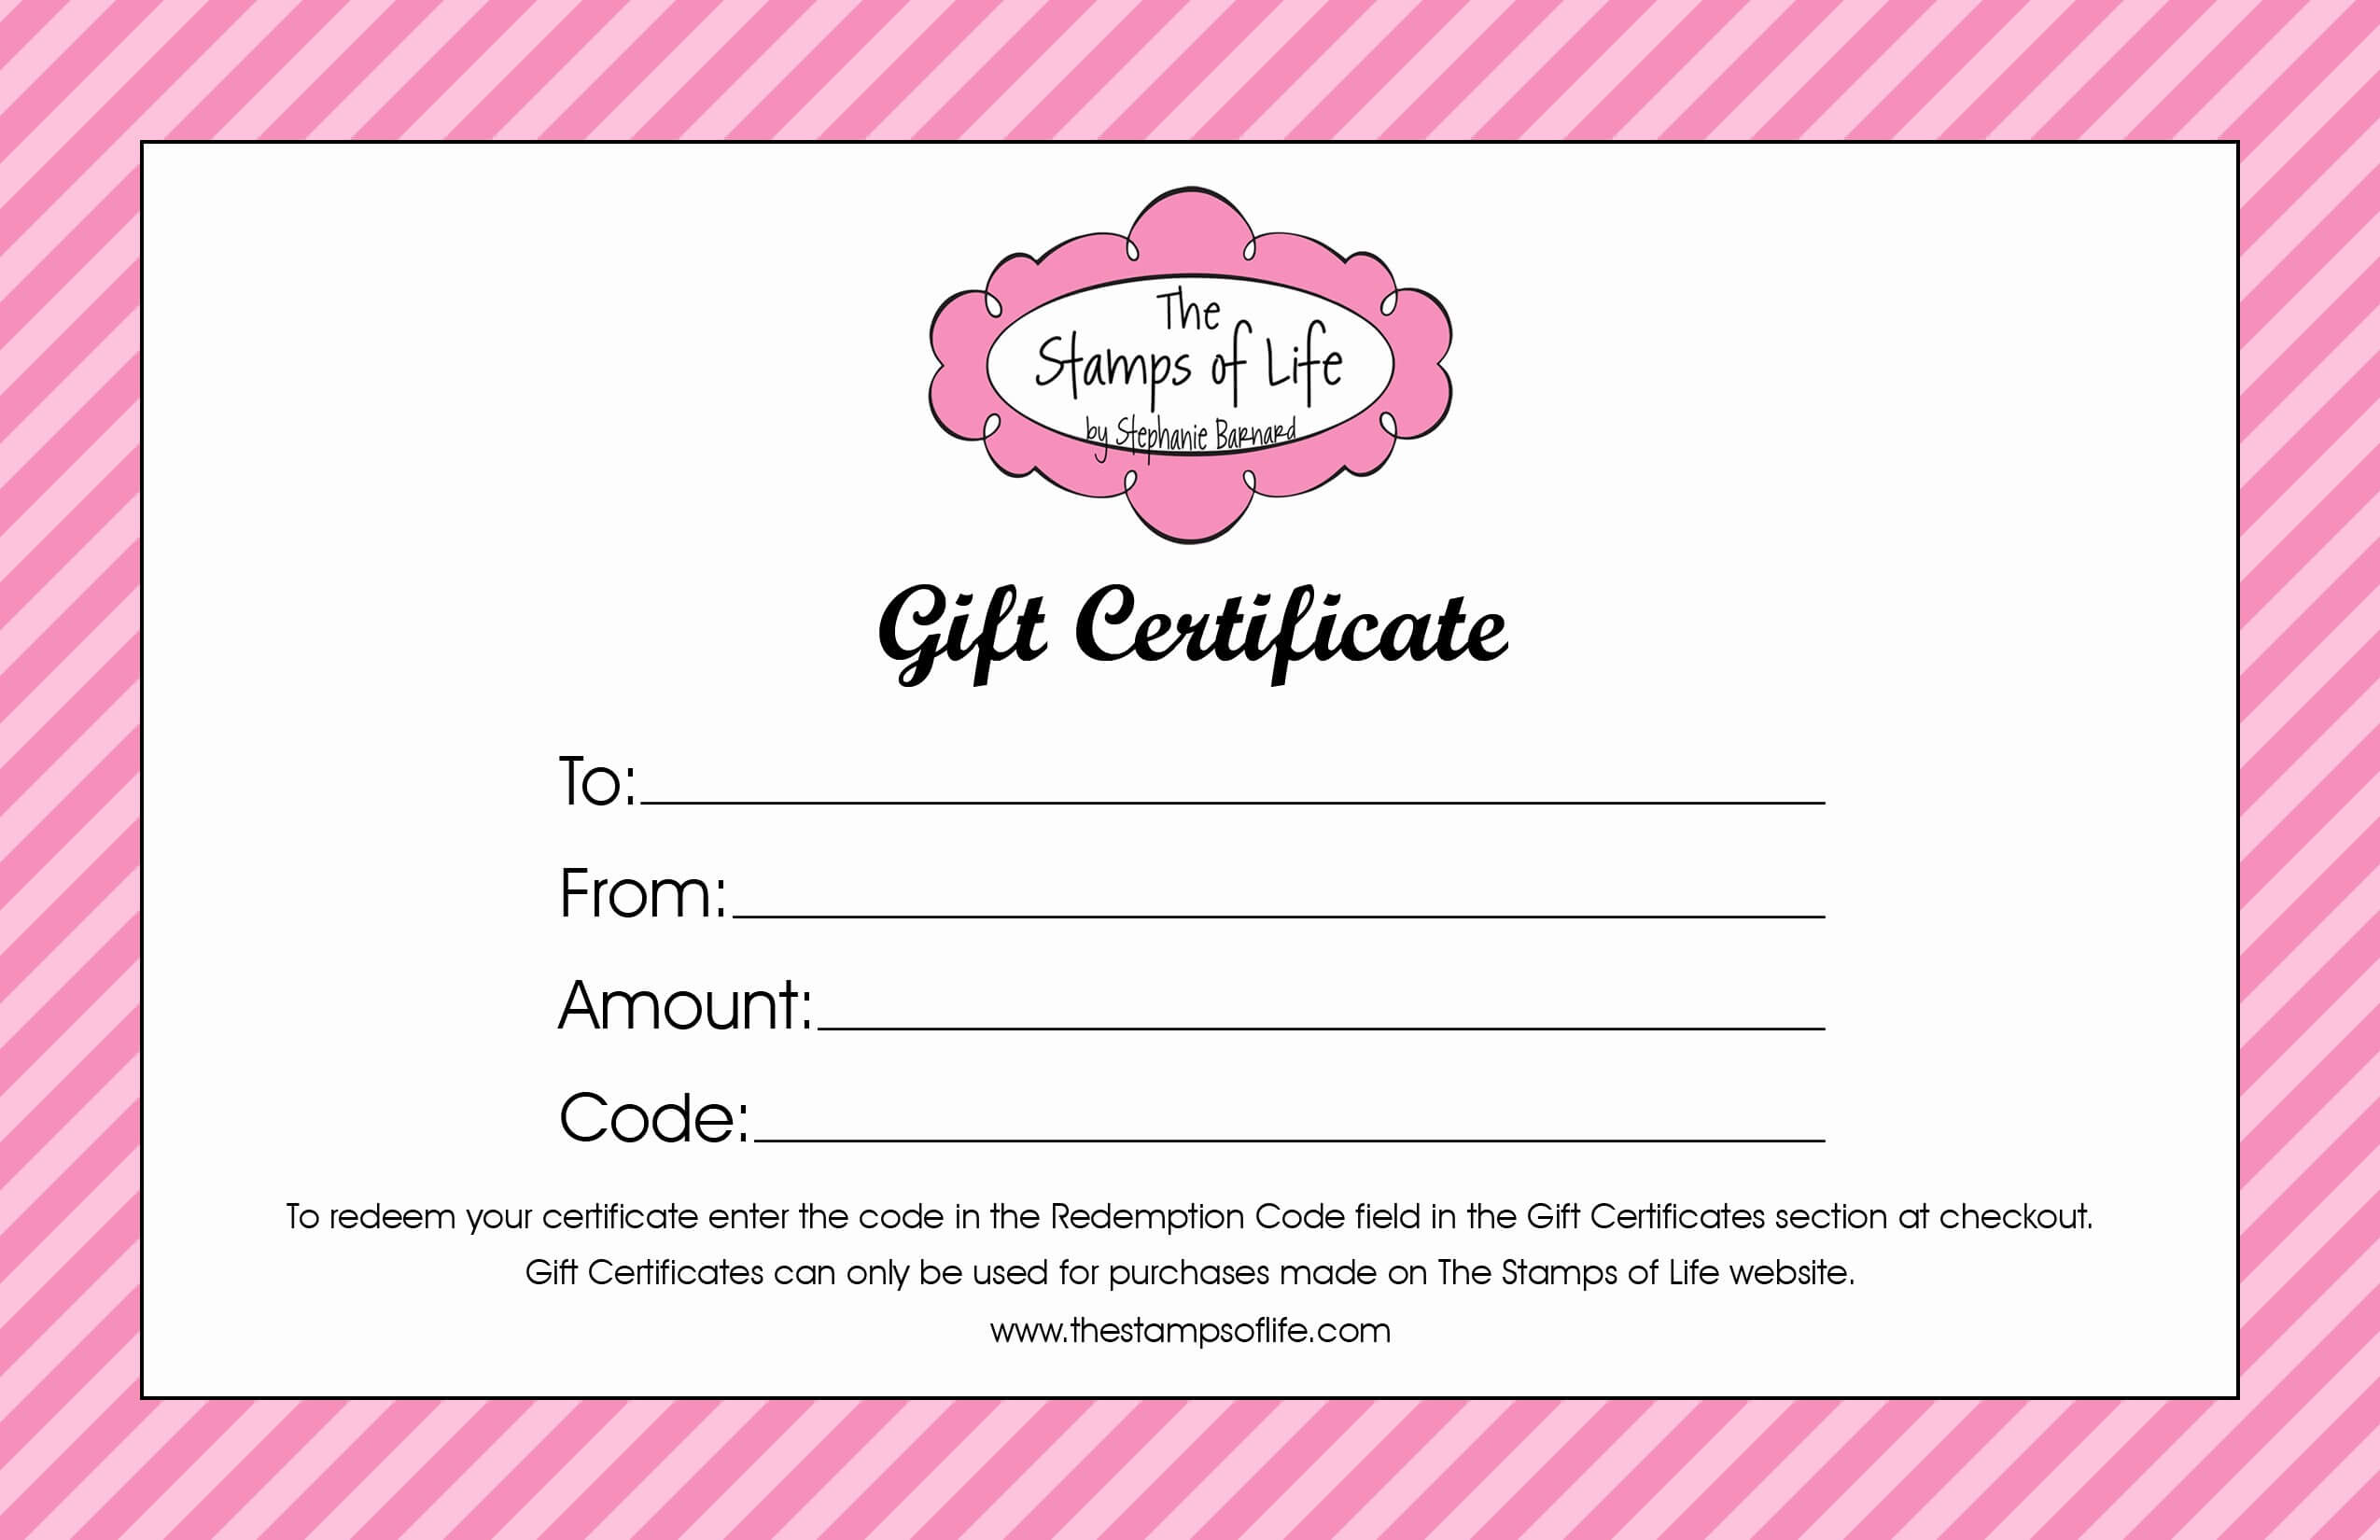 010 Free Gift Certificate Template Word Generic Certificates Regarding Generic Certificate Template